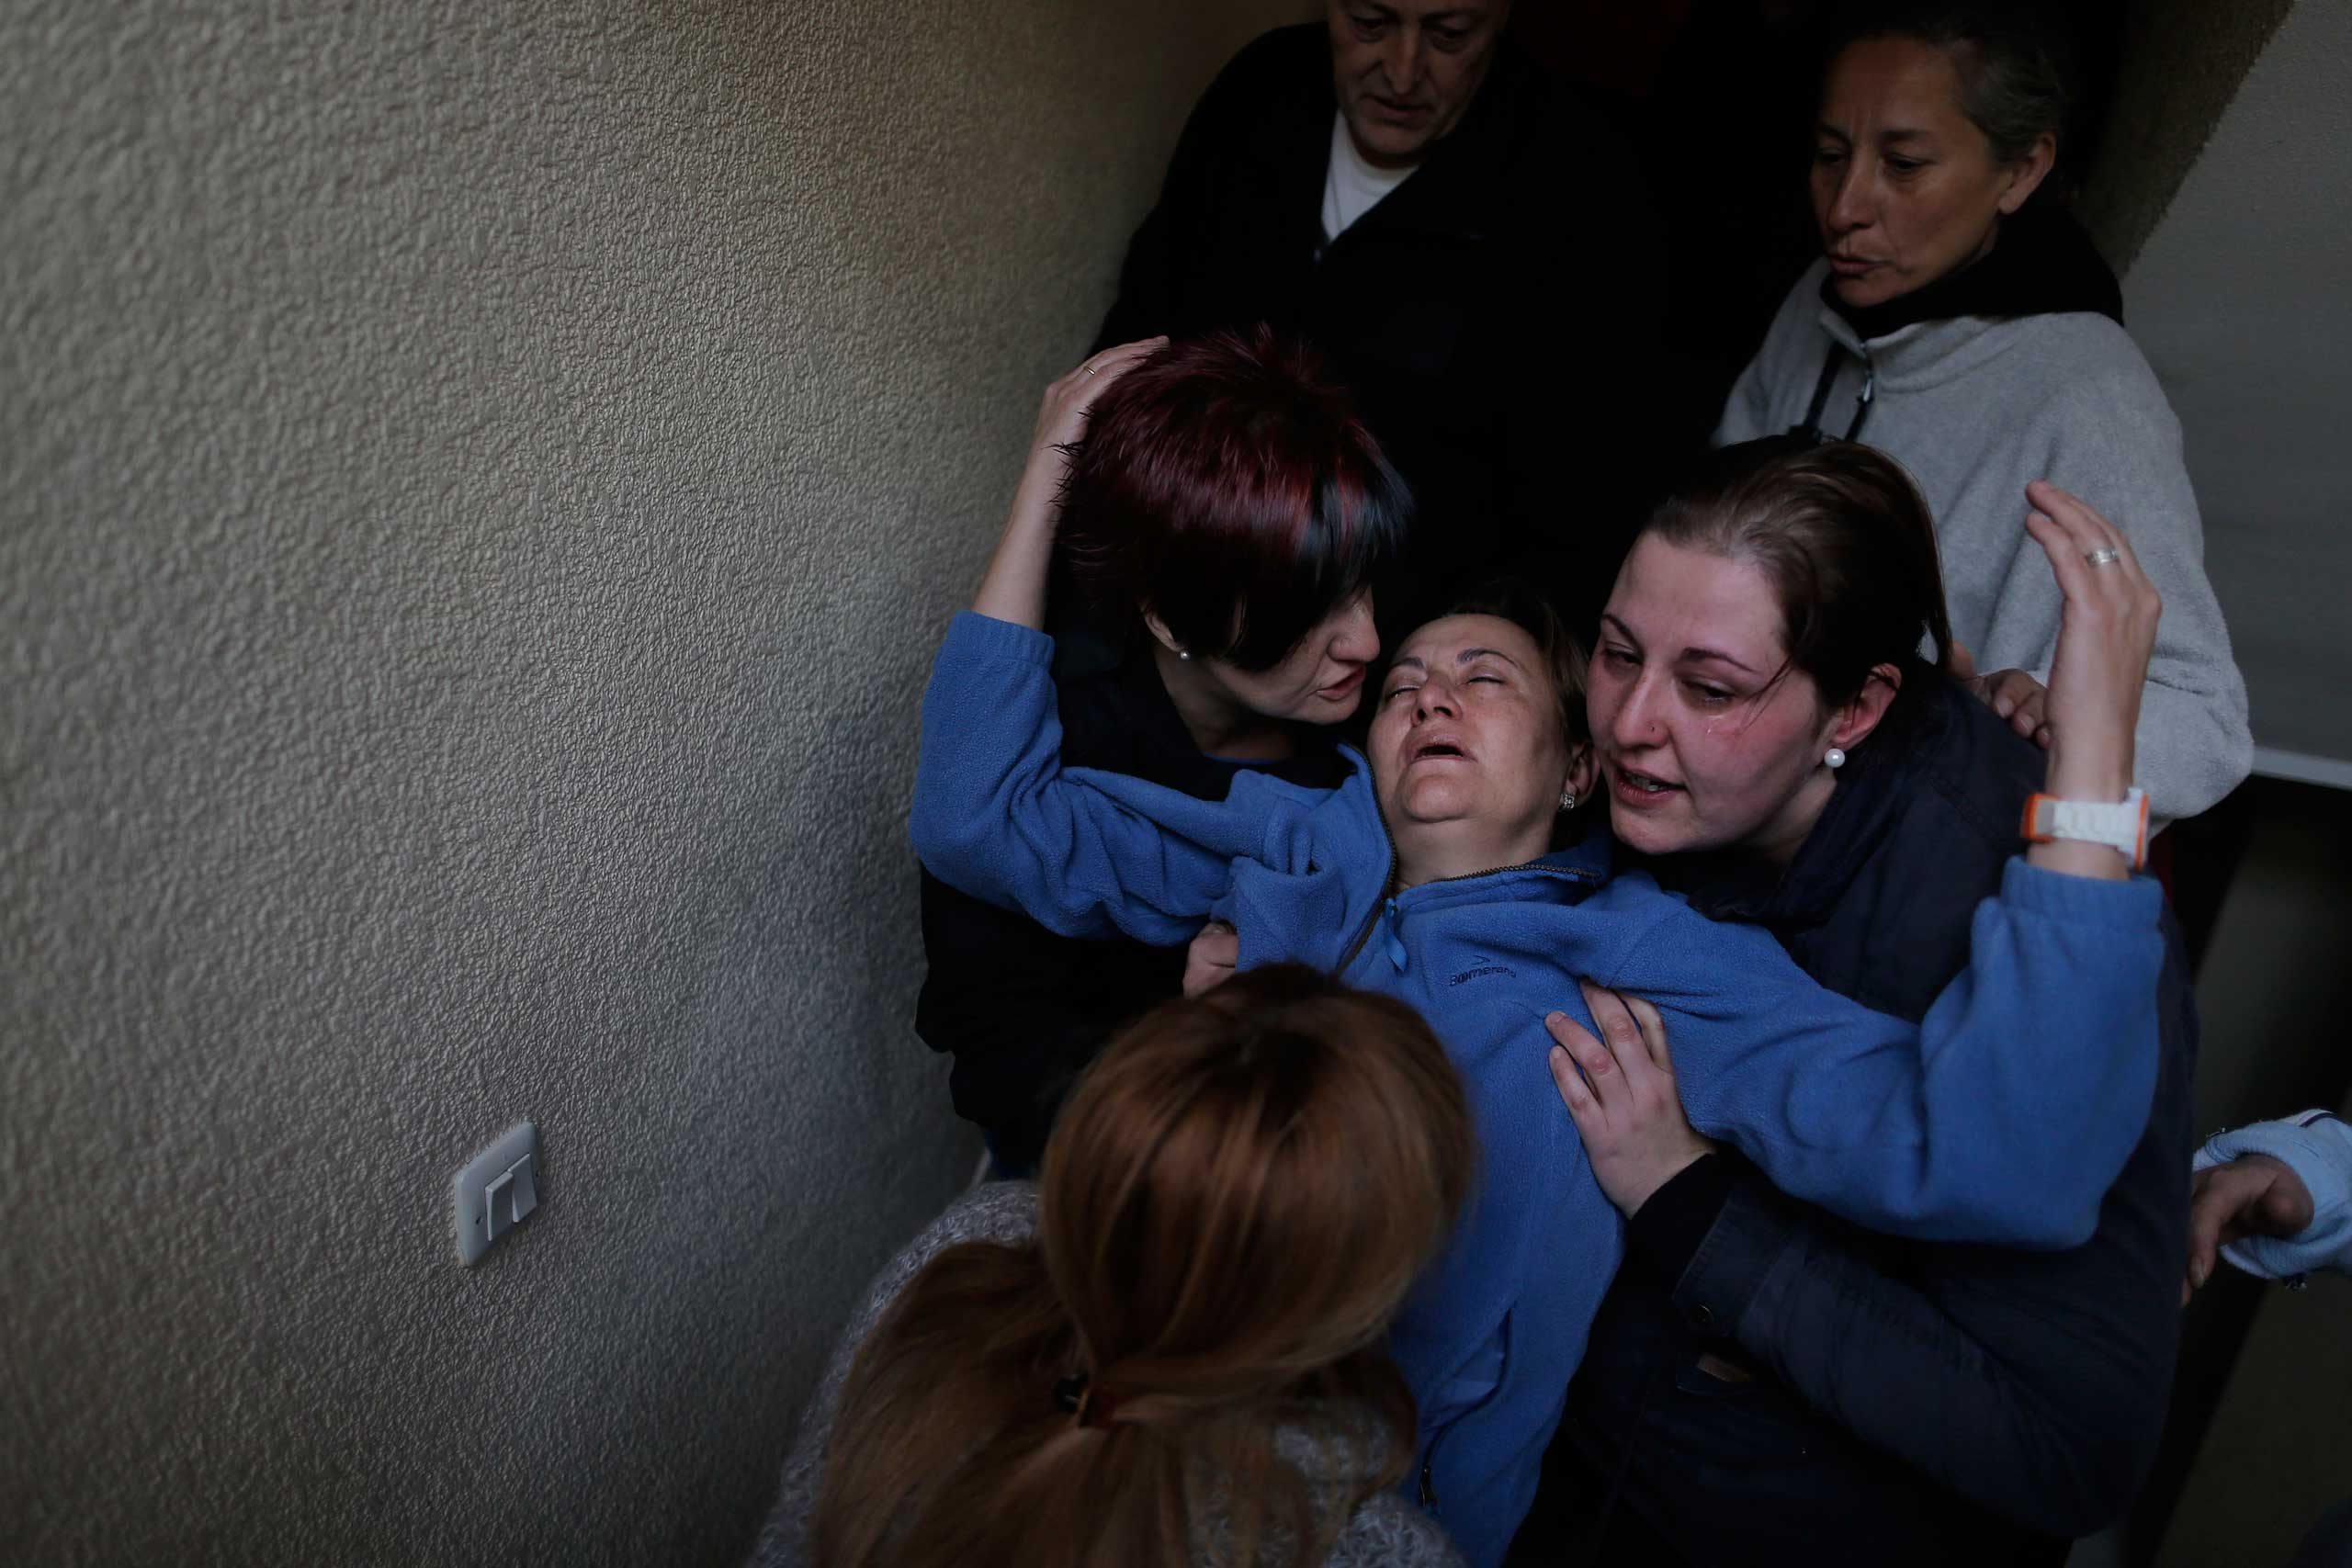 Soledad Carrasquilla Delgado, 53, center, gets help from her family and  members of the Victims' Mortgage Platform, as she faints during a panic attack following the postponement of her family's eviction in Madrid. Oct. 2013.